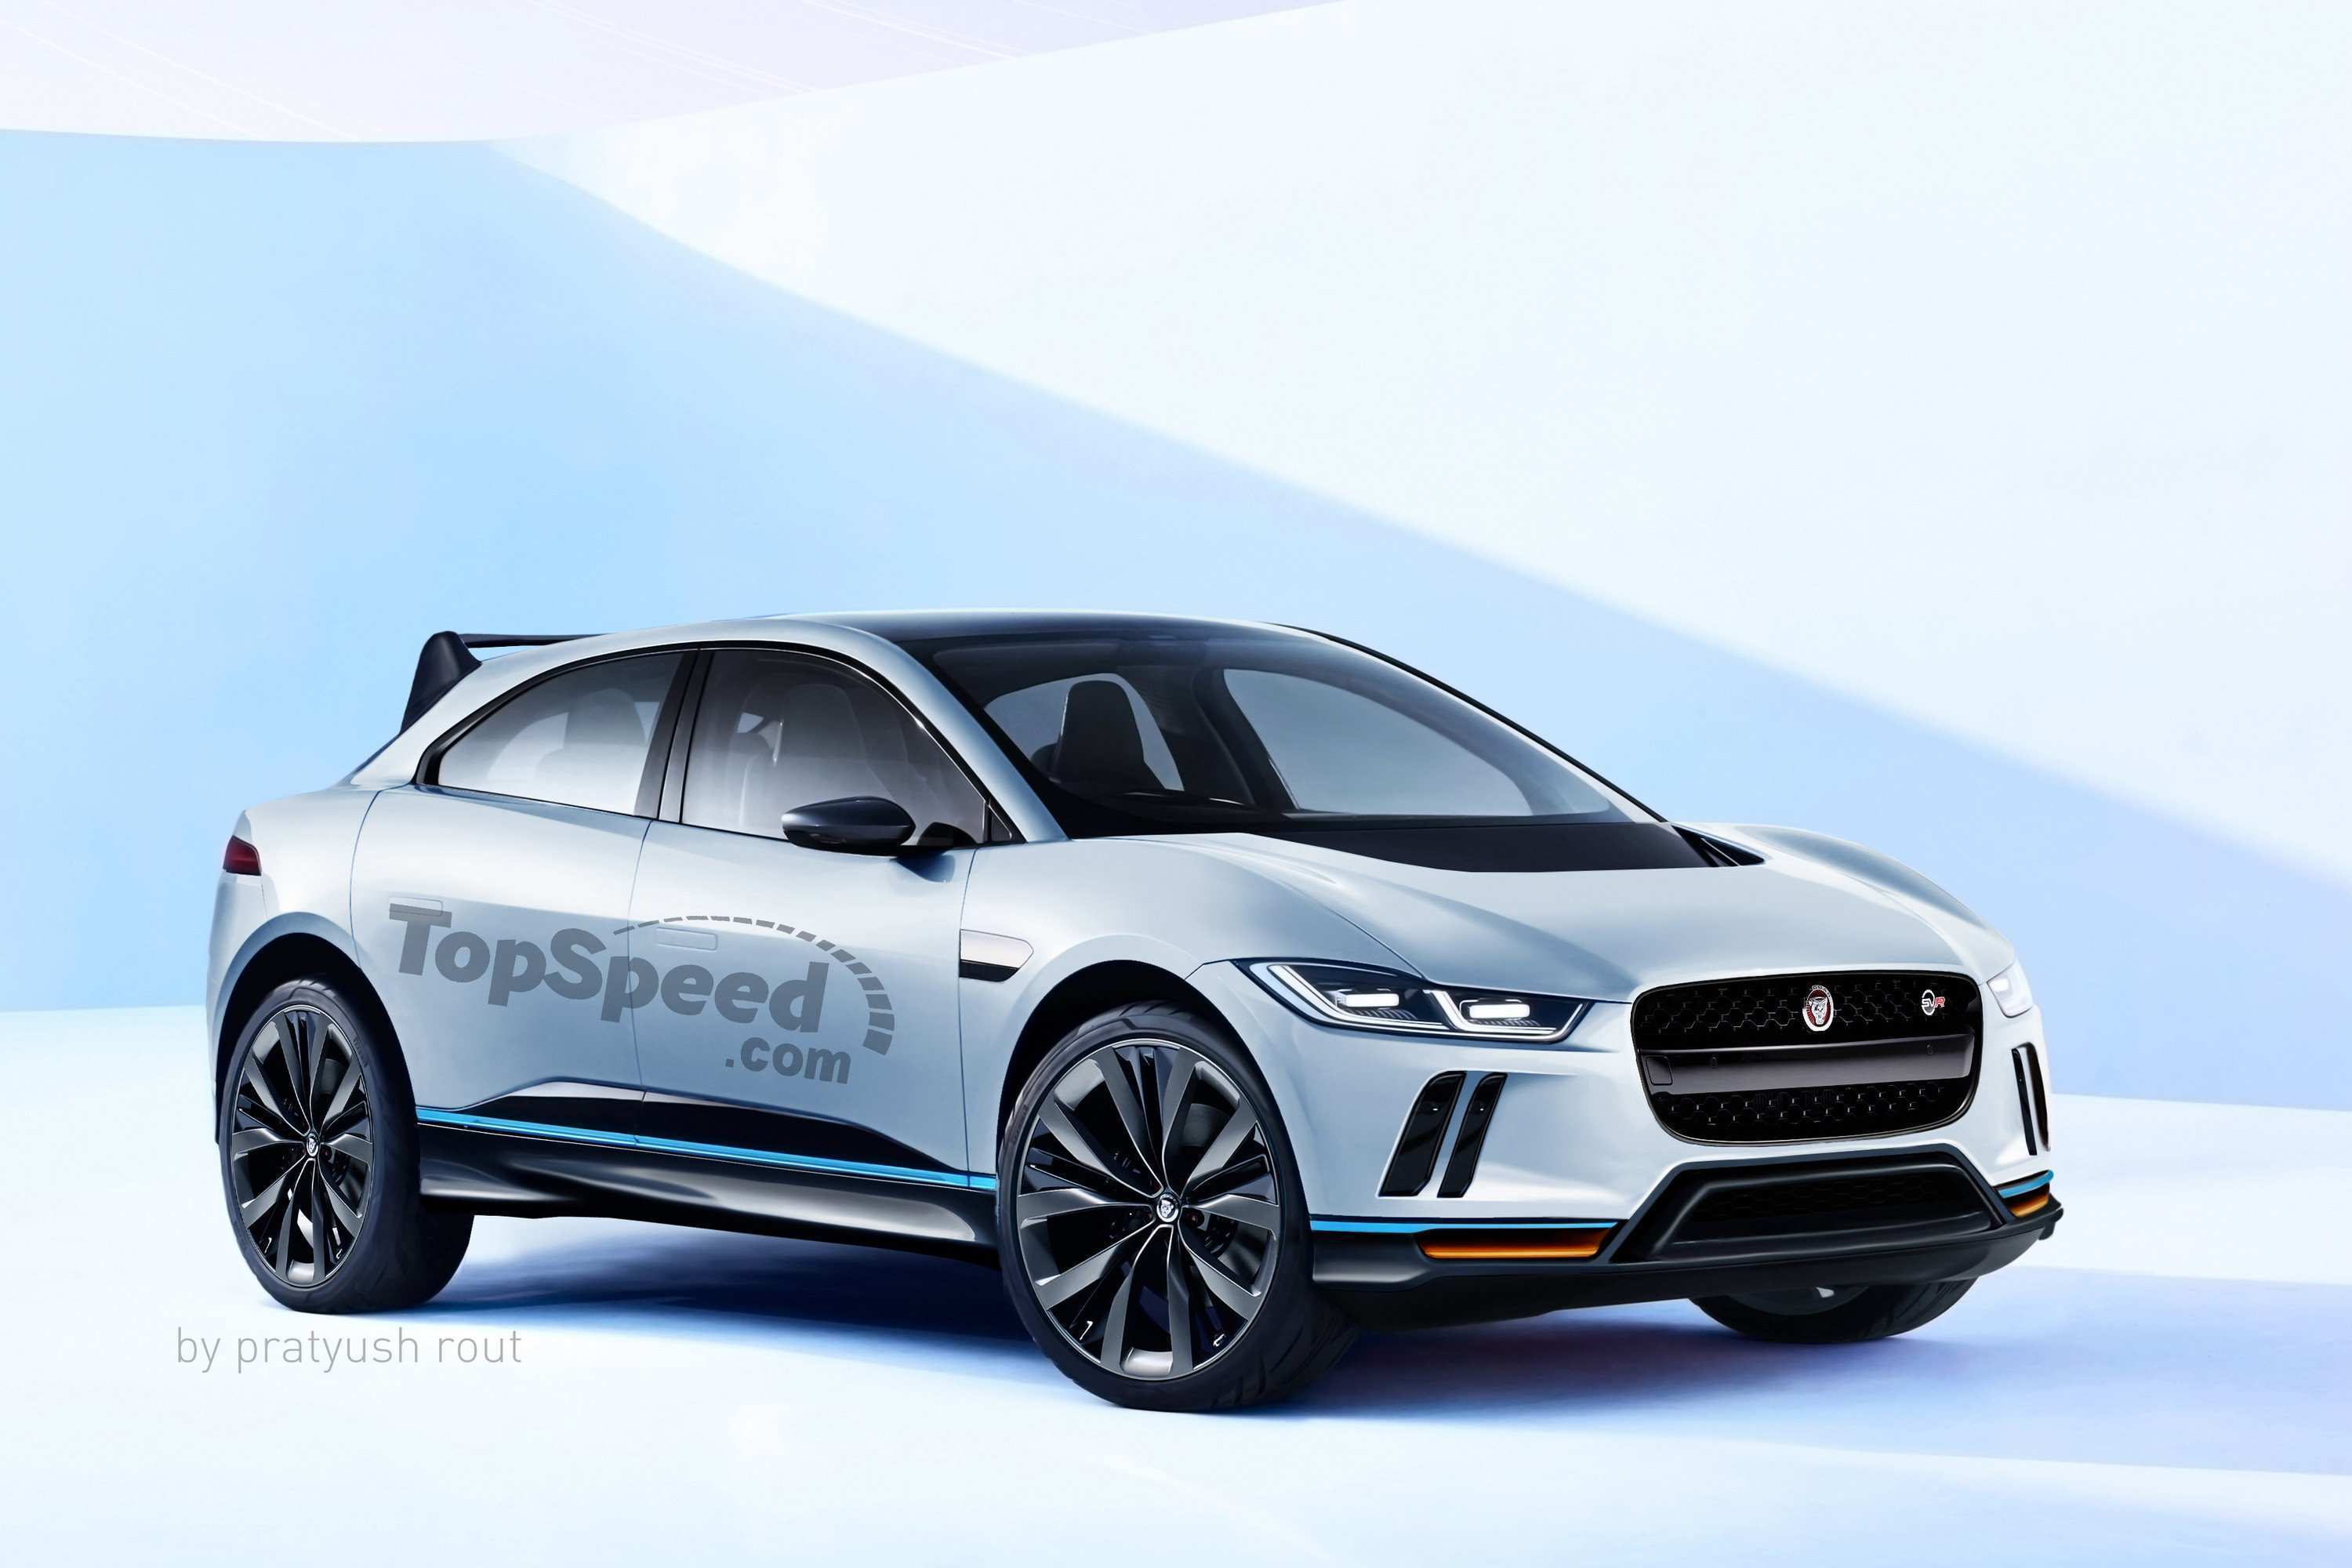 89 All New 2020 Jaguar F Pace Svr Interior by 2020 Jaguar F Pace Svr